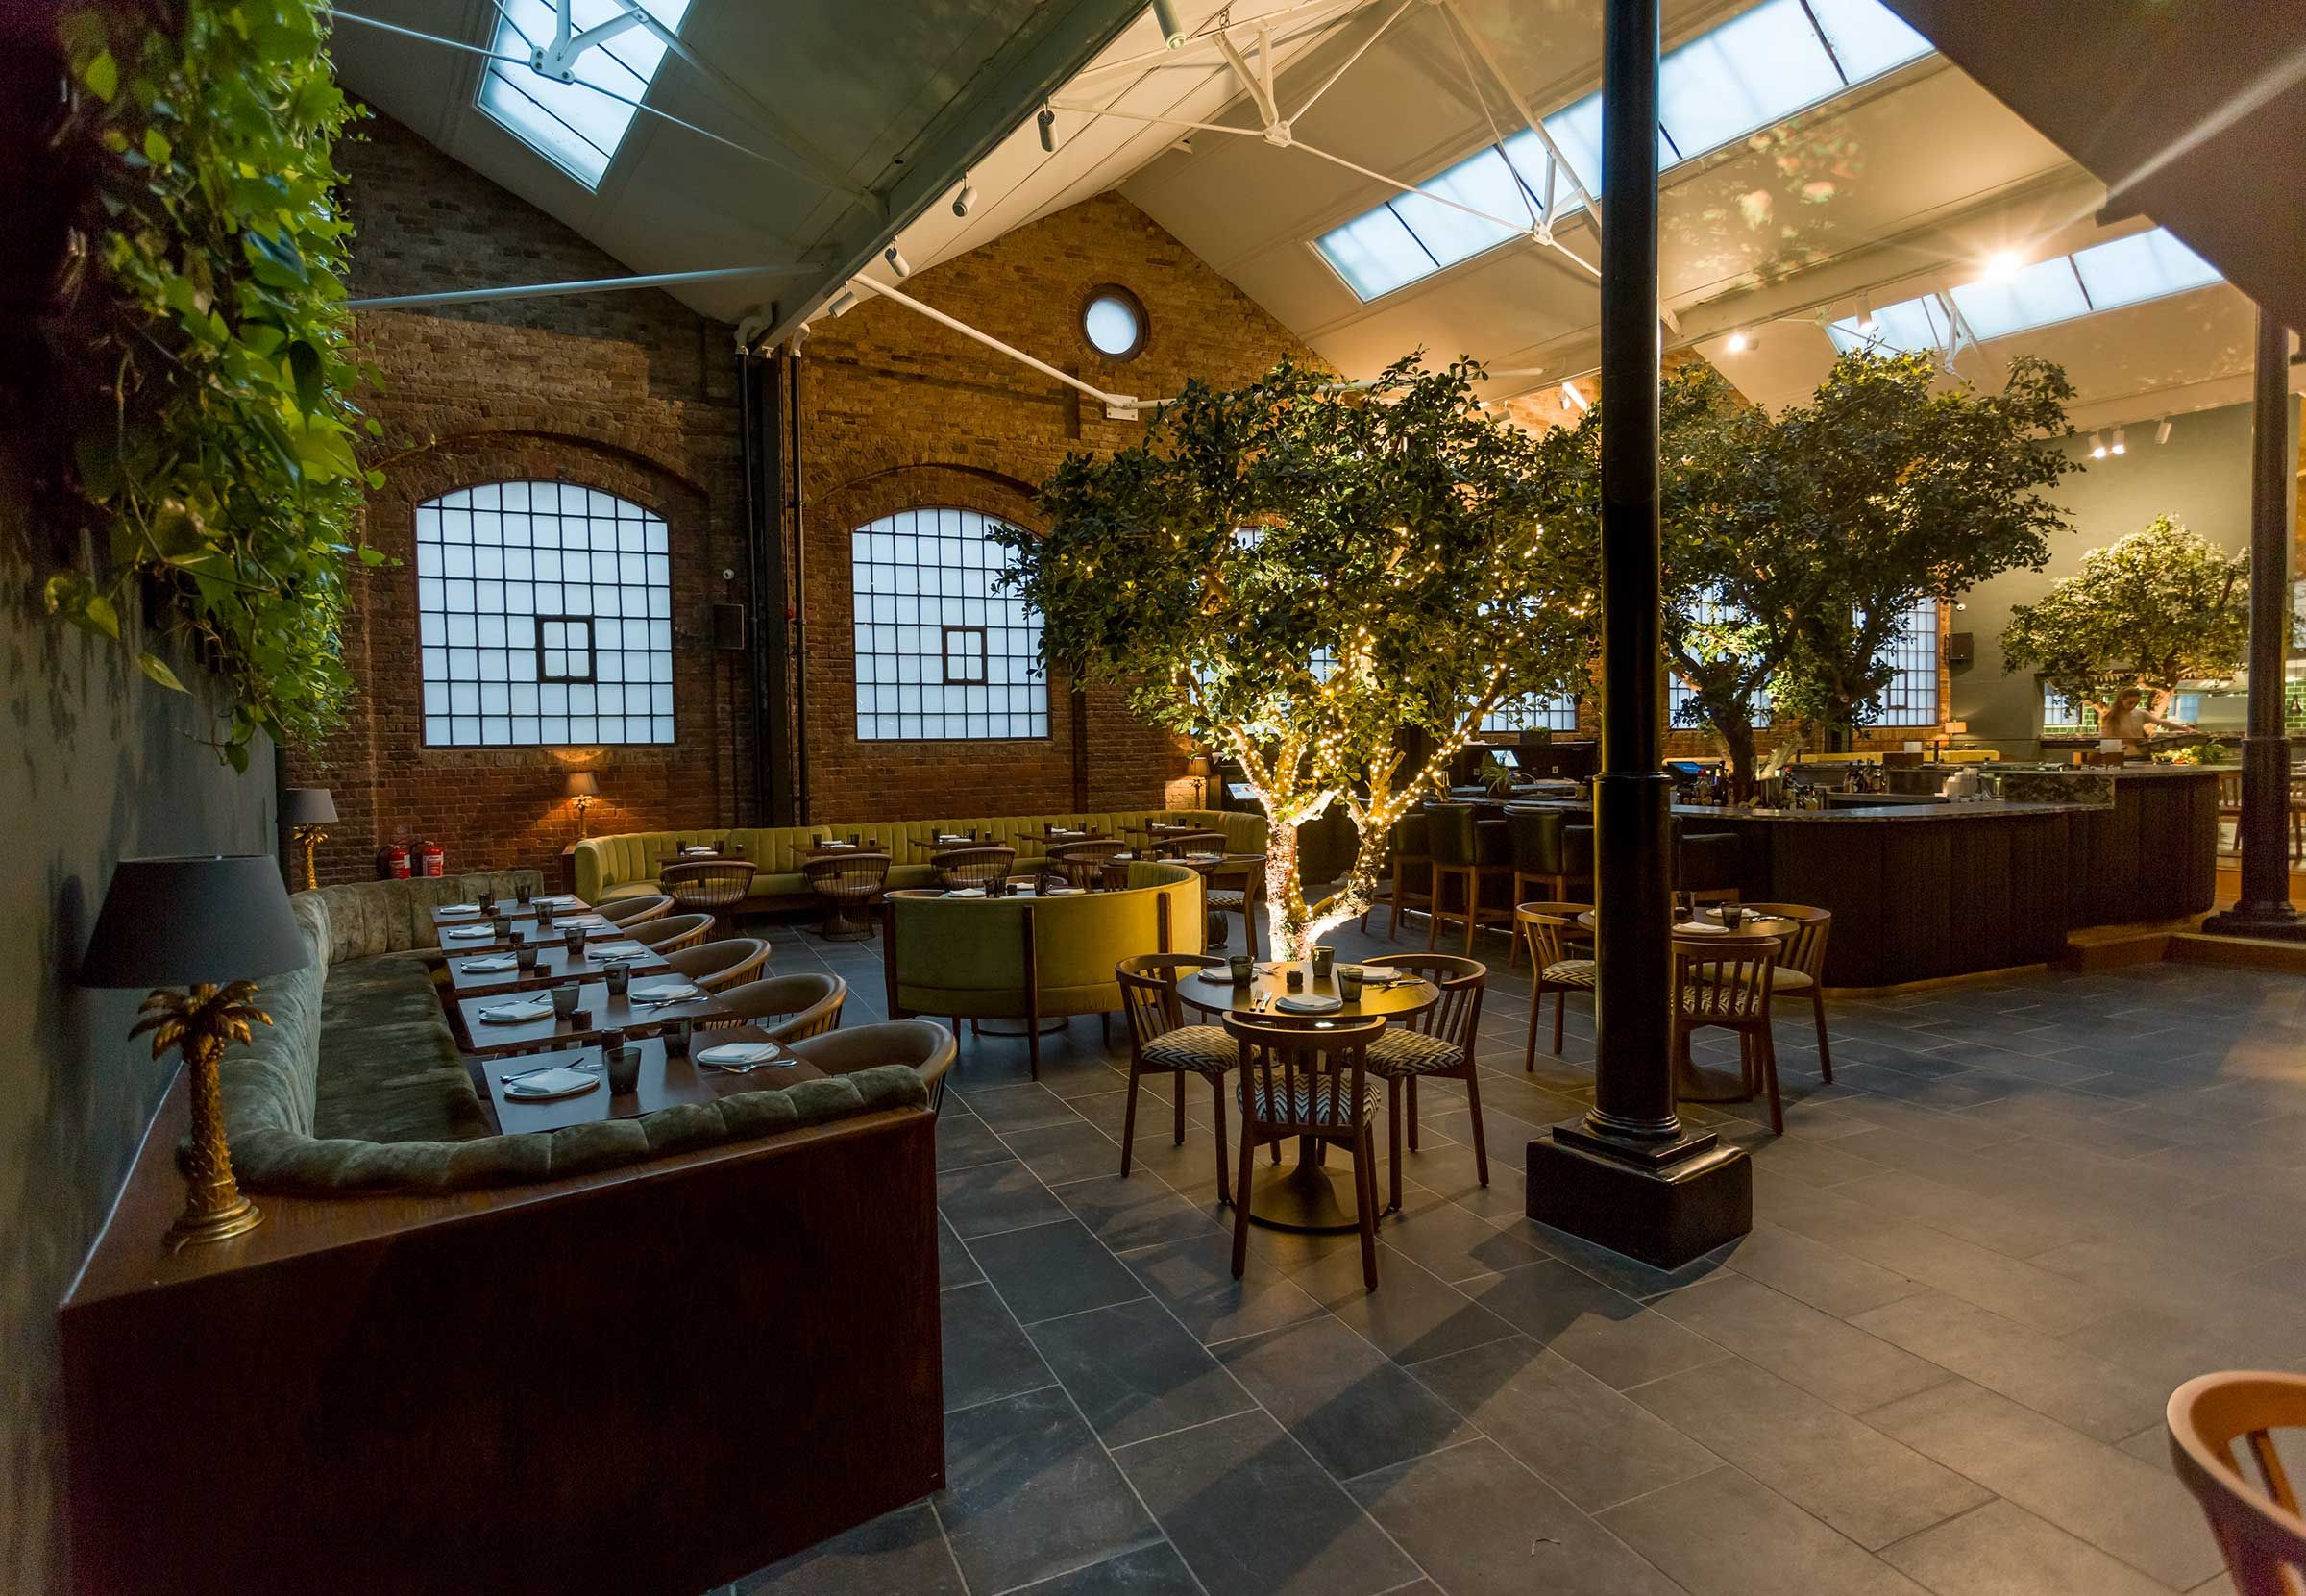 Portrait restaurant at the national portrait gallery fee nearest fee nearest tube charing cross or leicester square i love london pinterest national portrait ga malvernweather Image collections